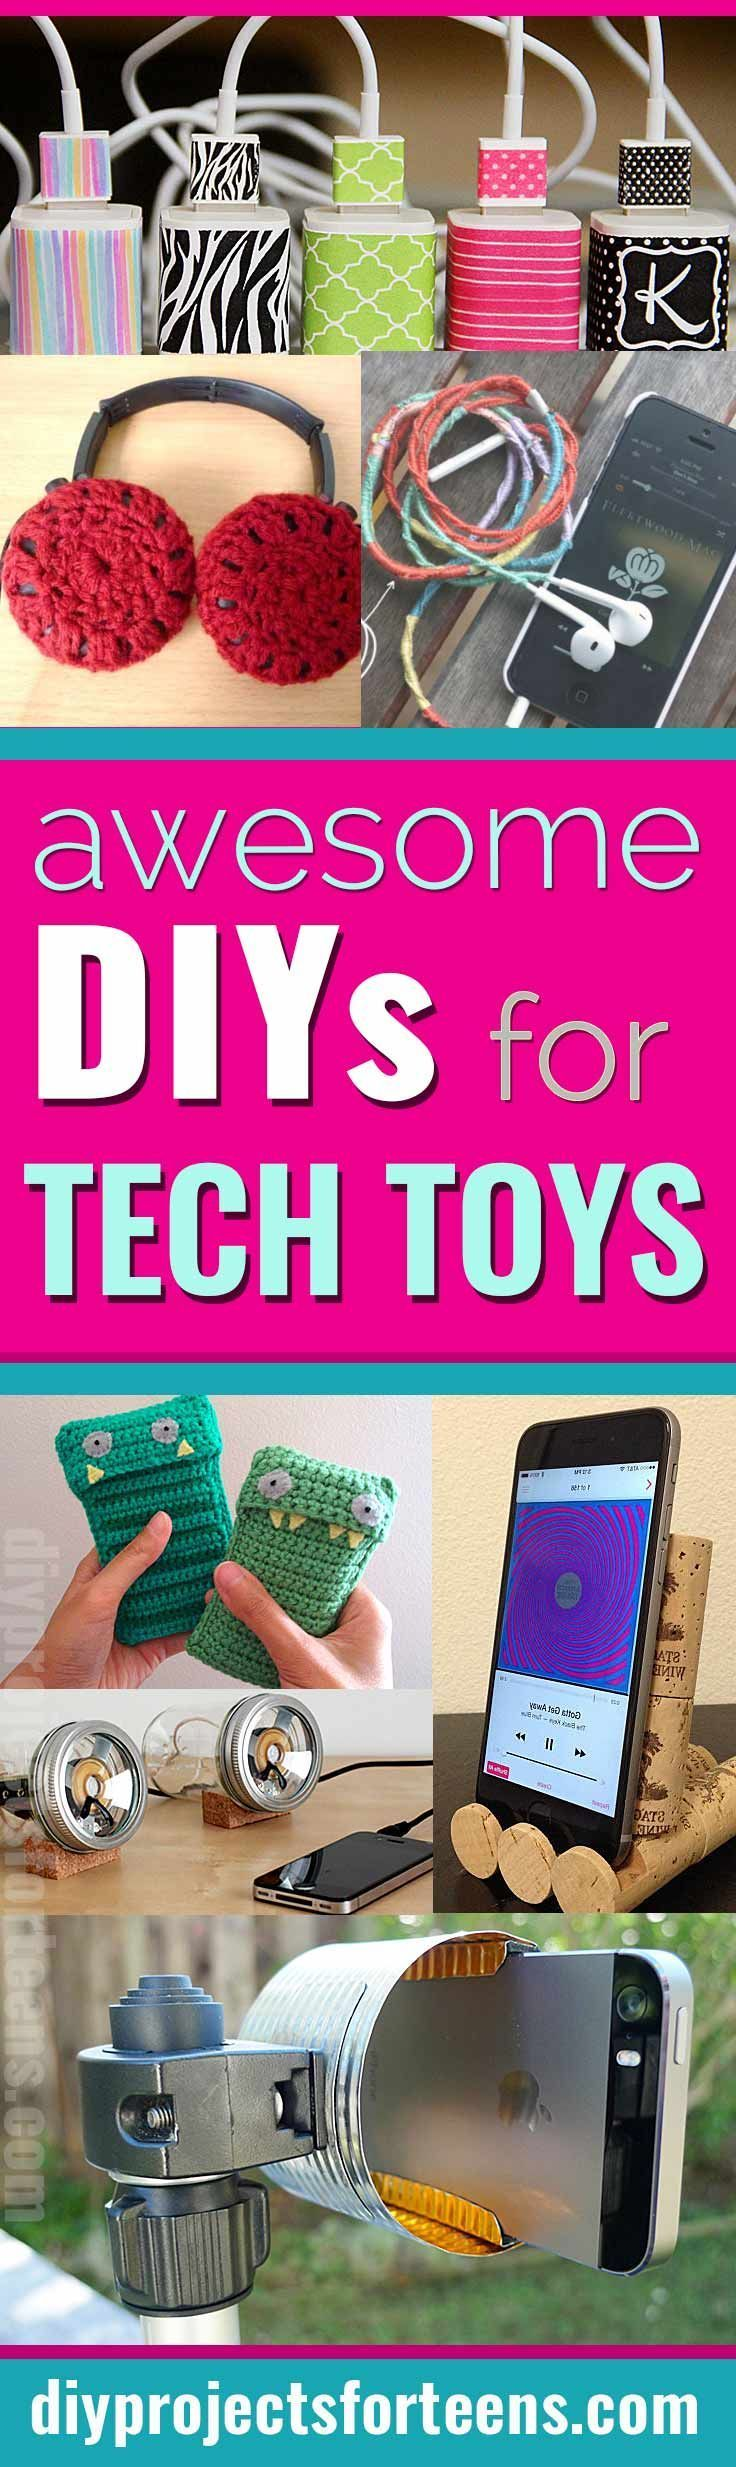 Cool DIY Ideas for Your iPhone iPad Tablets & Phones | Fun Projects for Chargers, Cases and Headphones | http://diyprojectsforteens.com/diy-projects-iphone-ipad-phone/